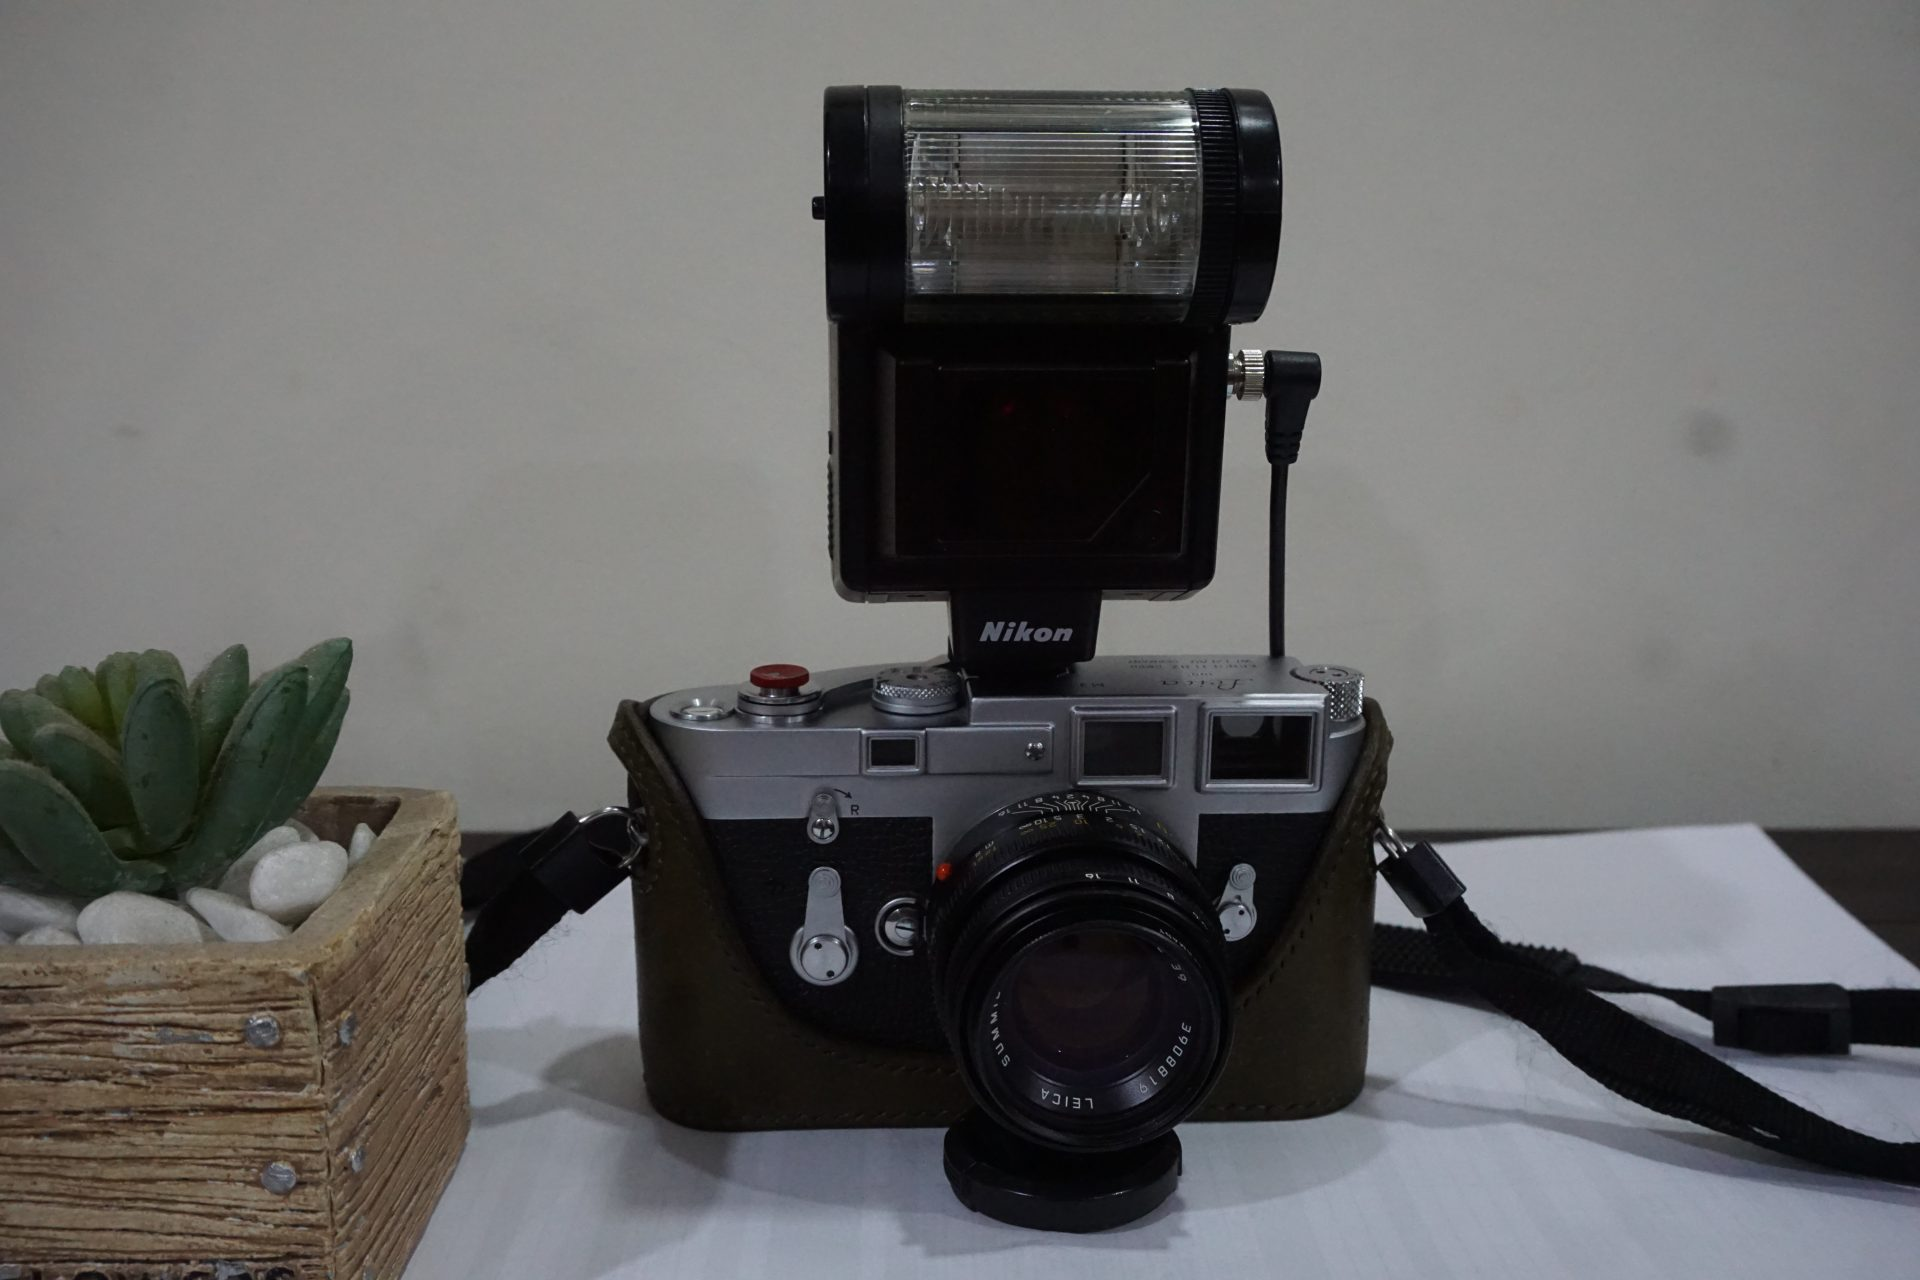 You can see the full set of the camera, cable and flash.